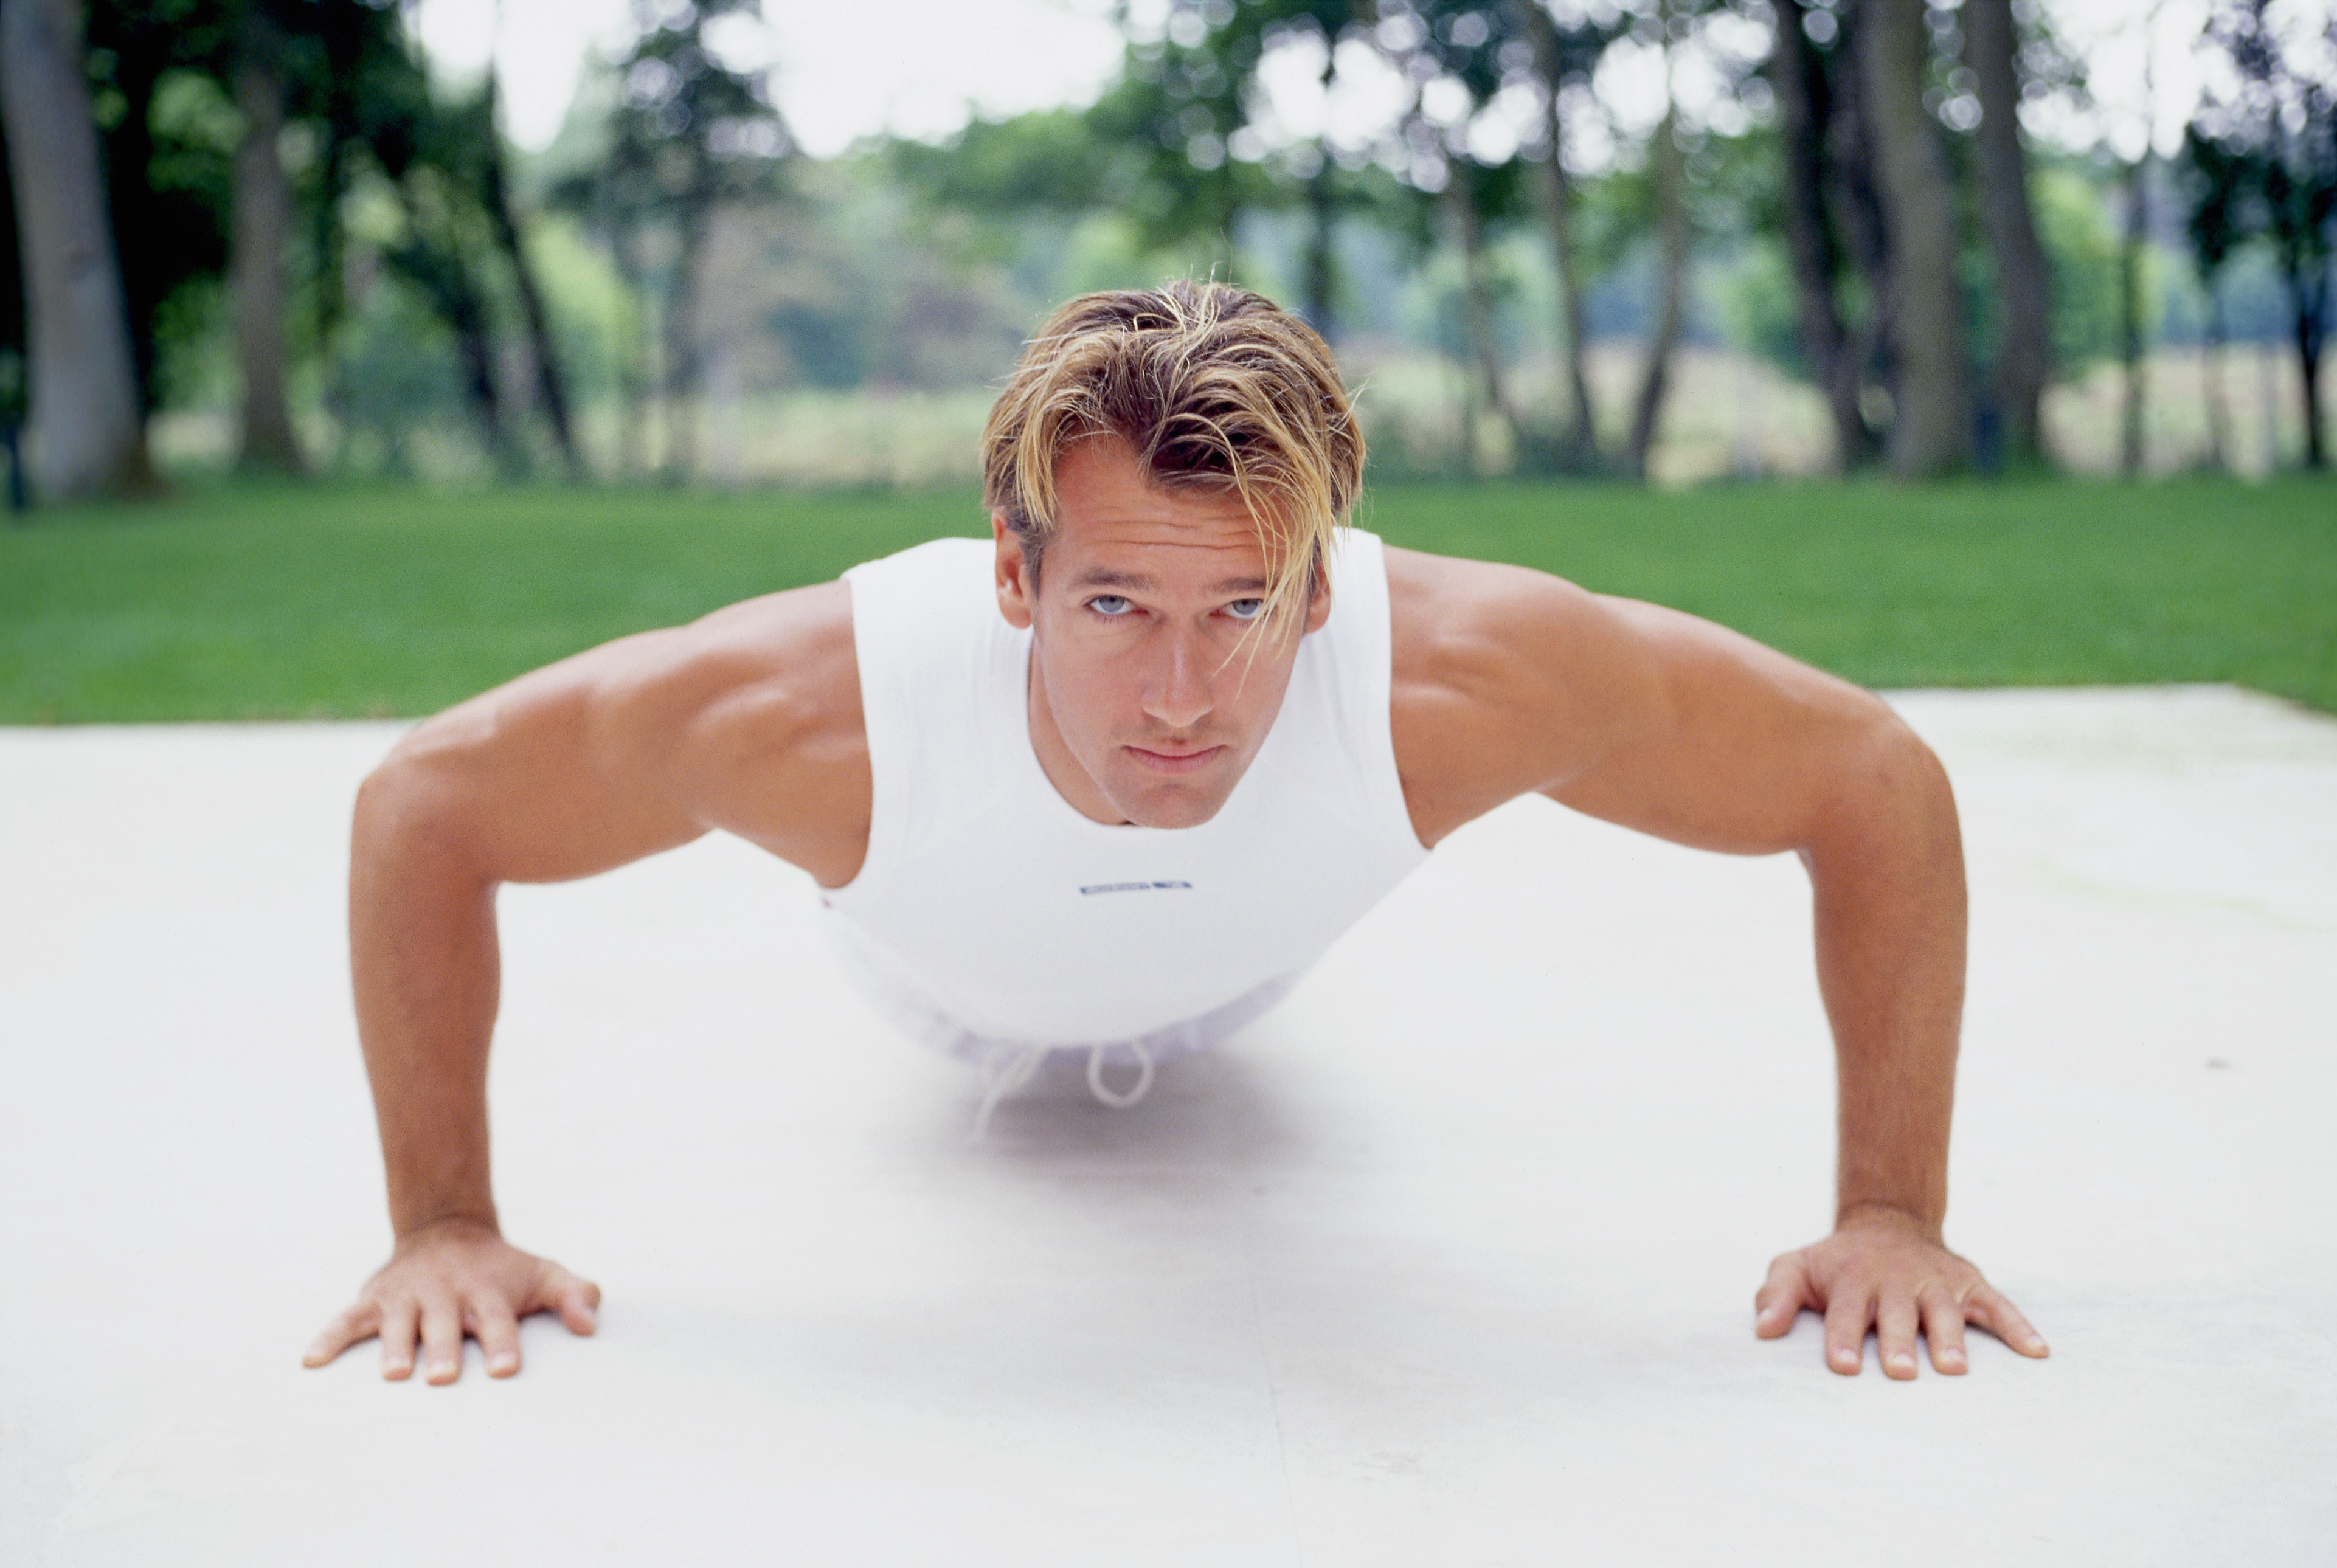 How Many Times a Day Can You Do Push-Ups?